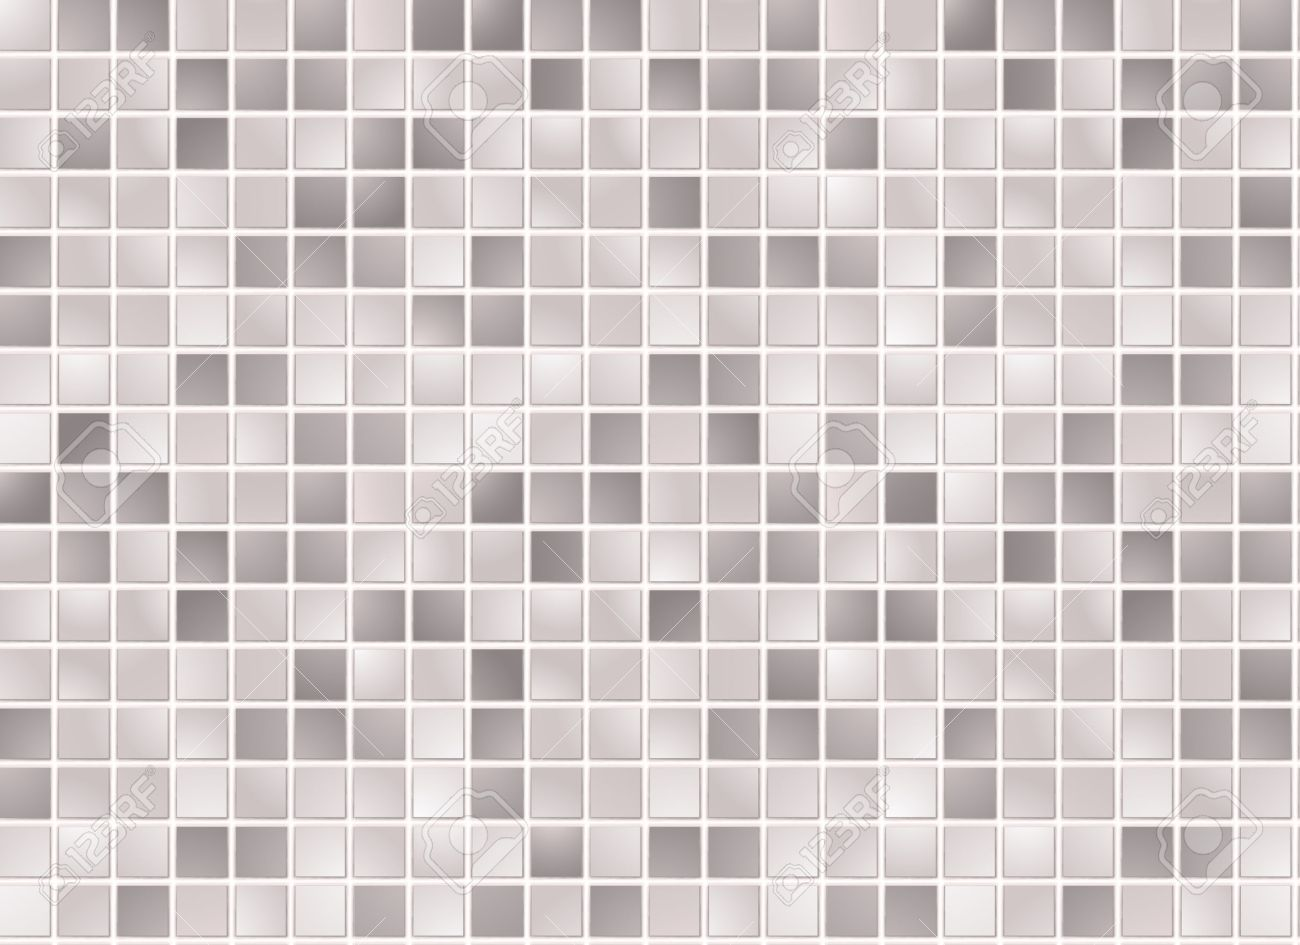 Seamless Grey Square Tiles Pattern Royalty Free Cliparts, Vectors ...